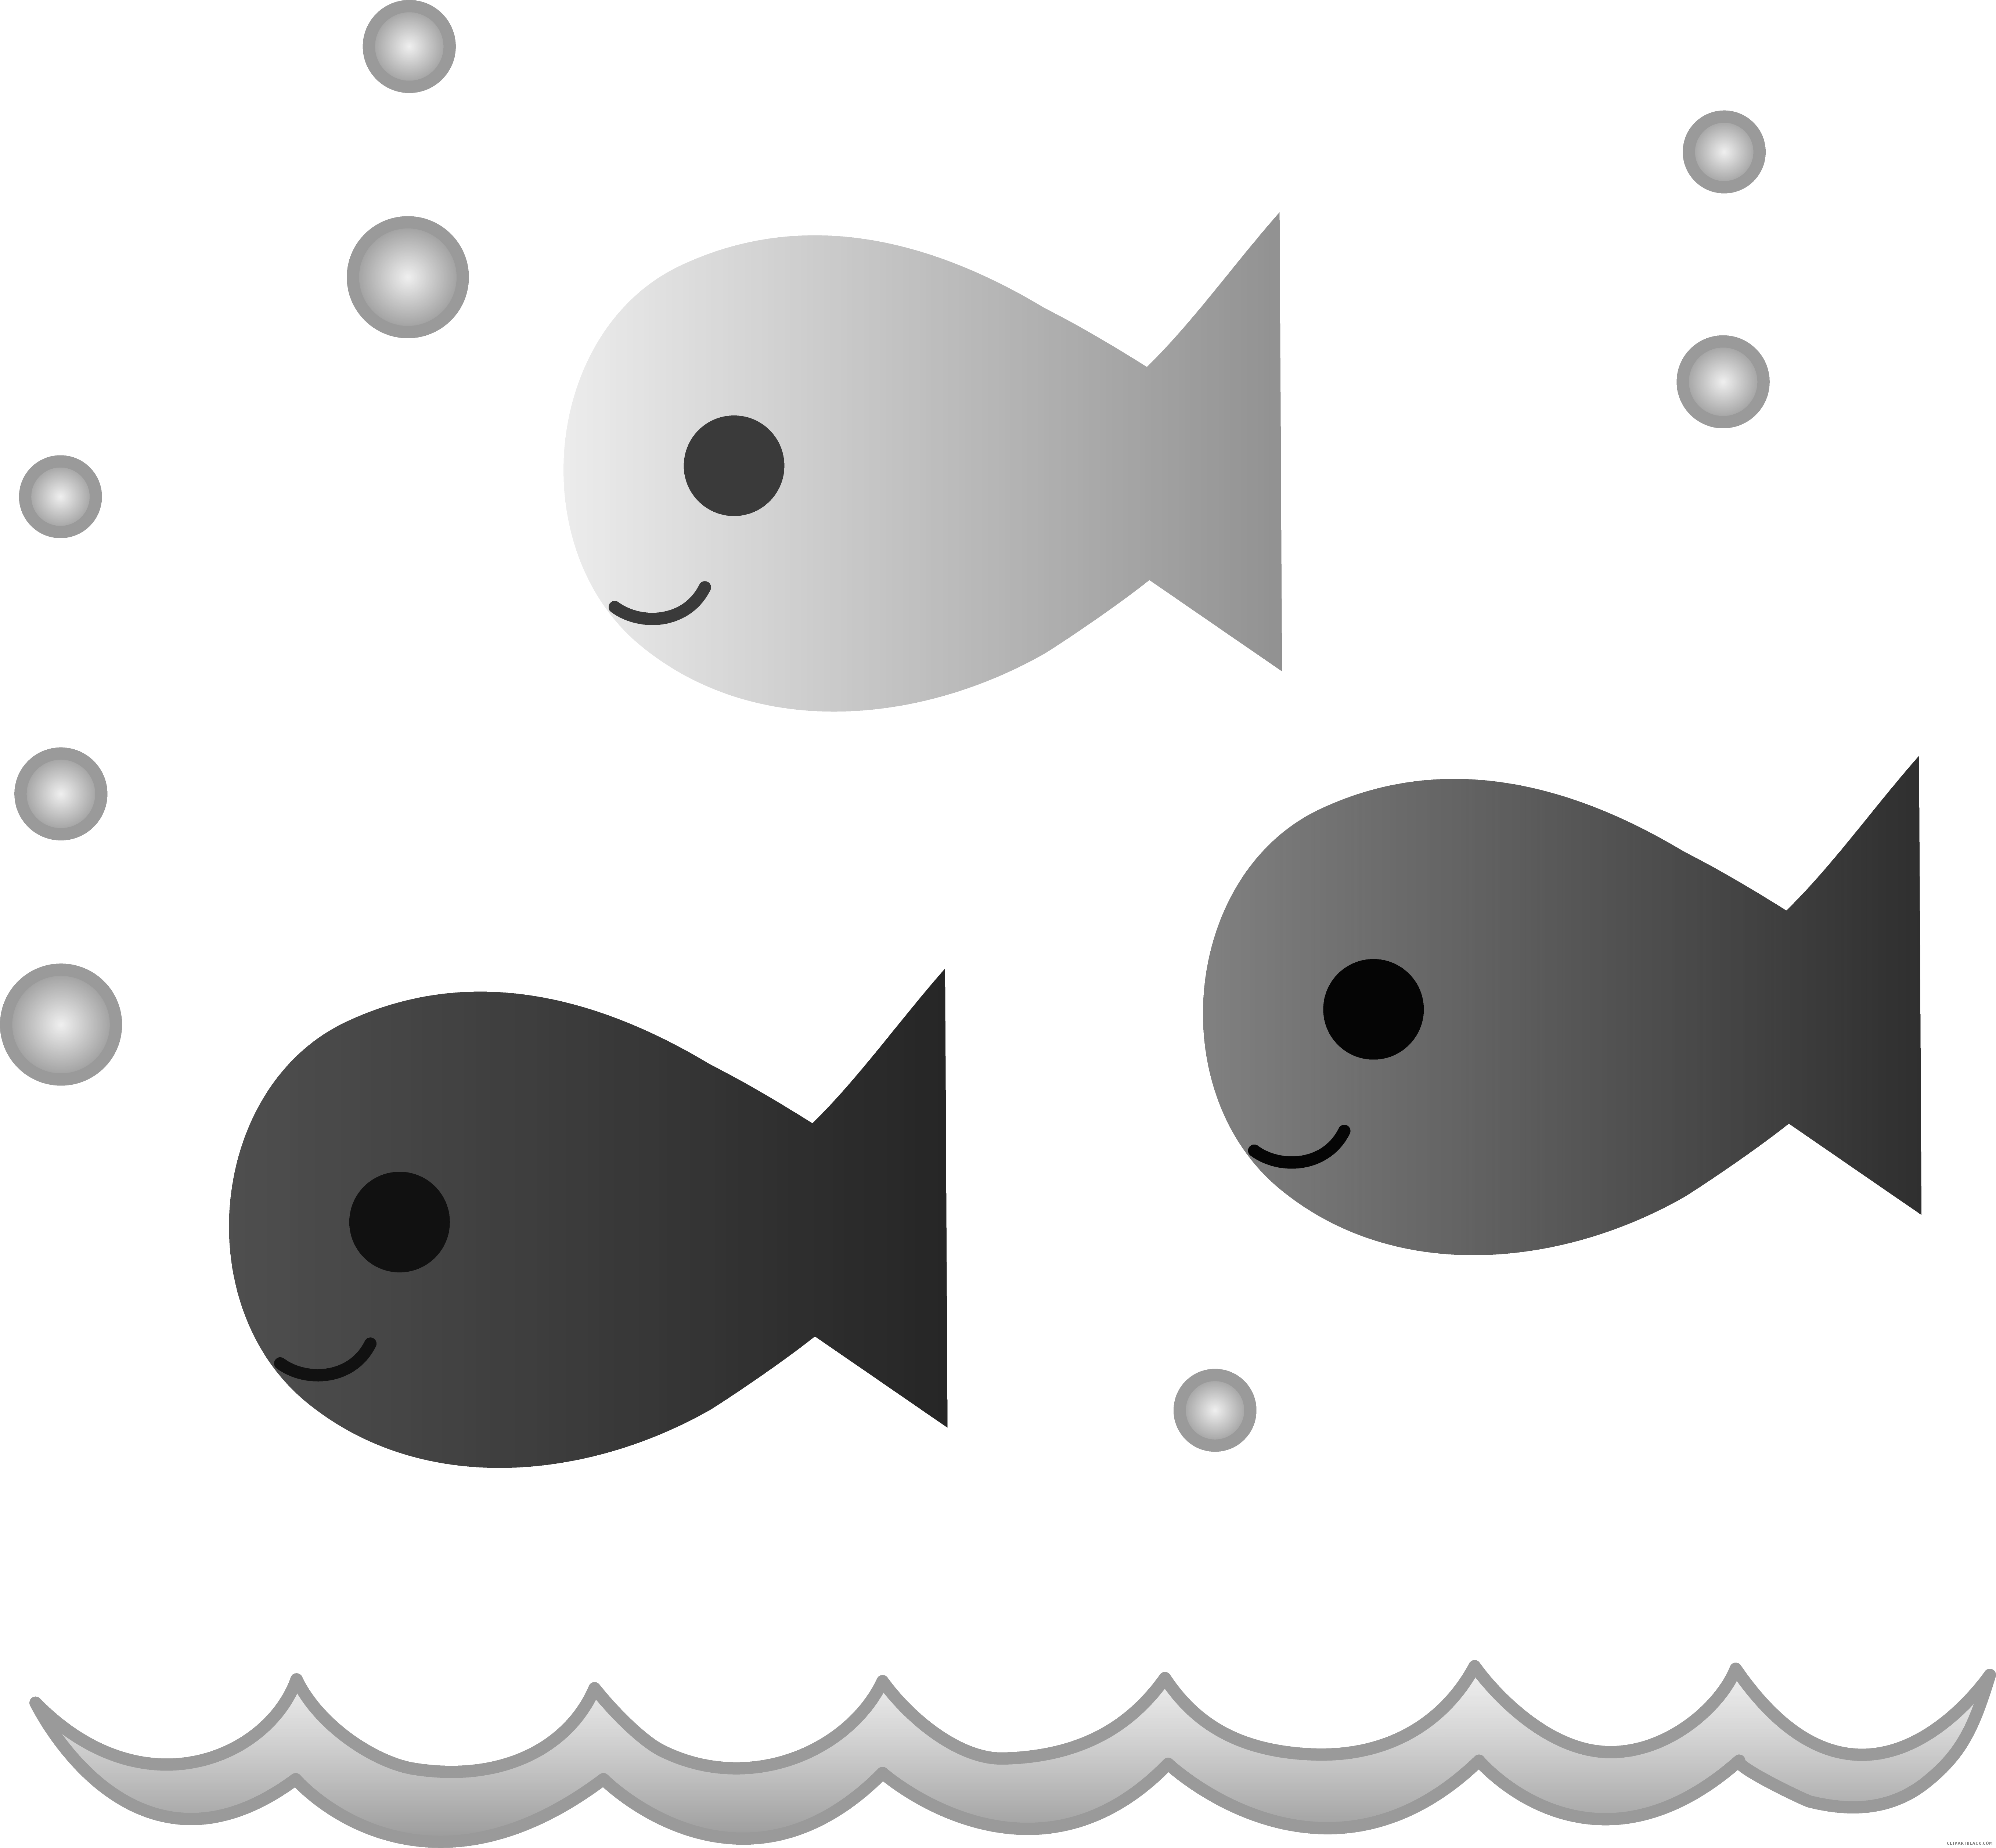 Fish with bubbles clipart png library download Fish - Page 38 of 56 - ClipartBlack.com png library download